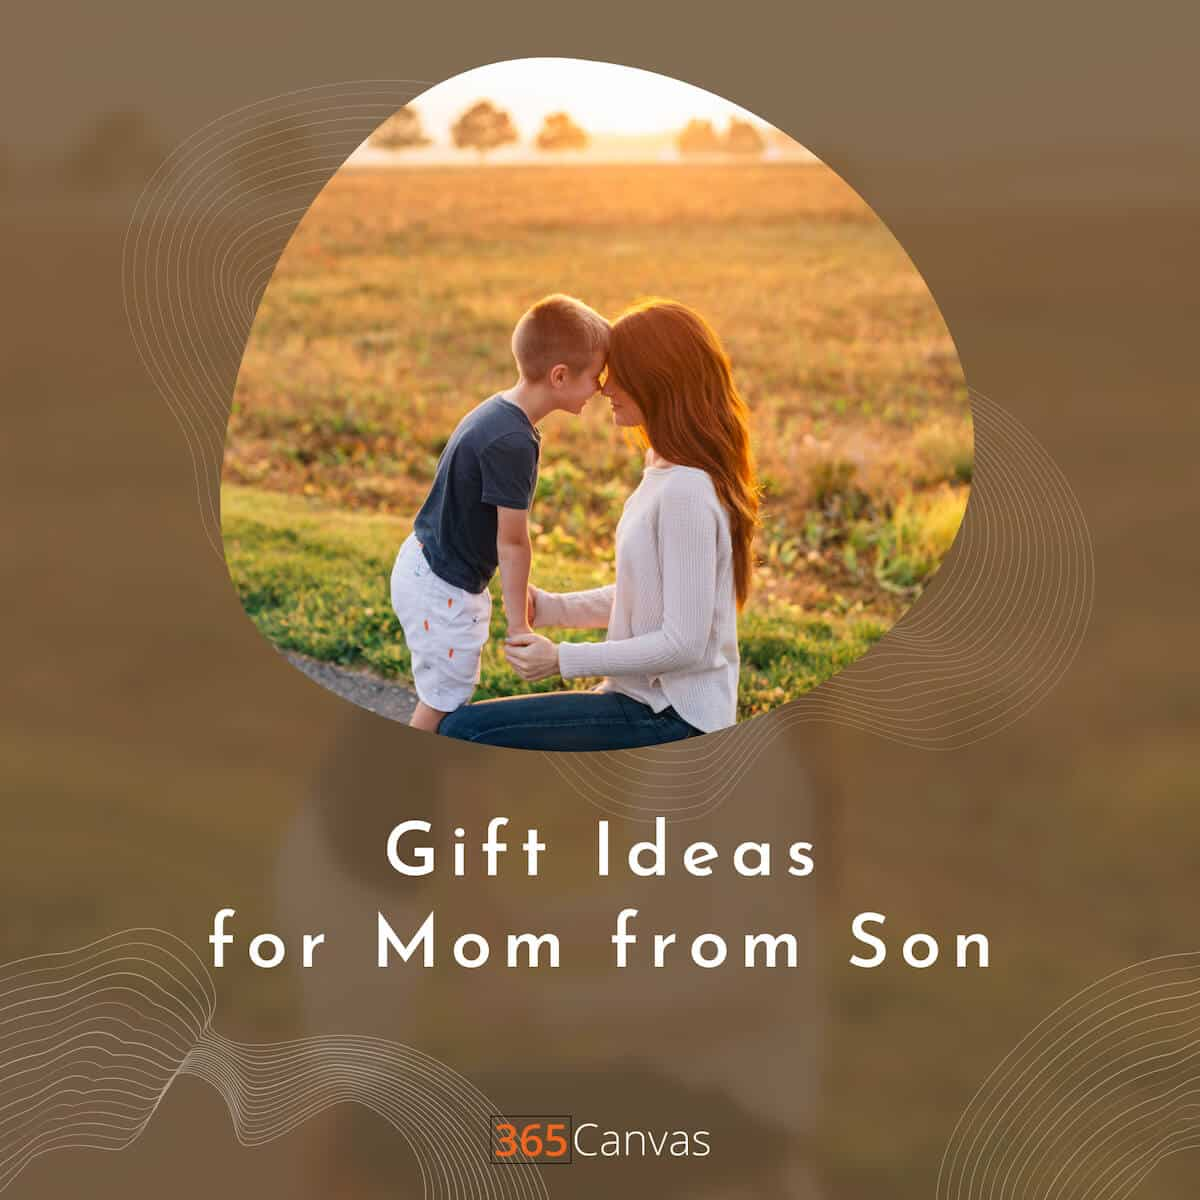 The 30 Best Gifts for Mom from Son for Christmas 2021